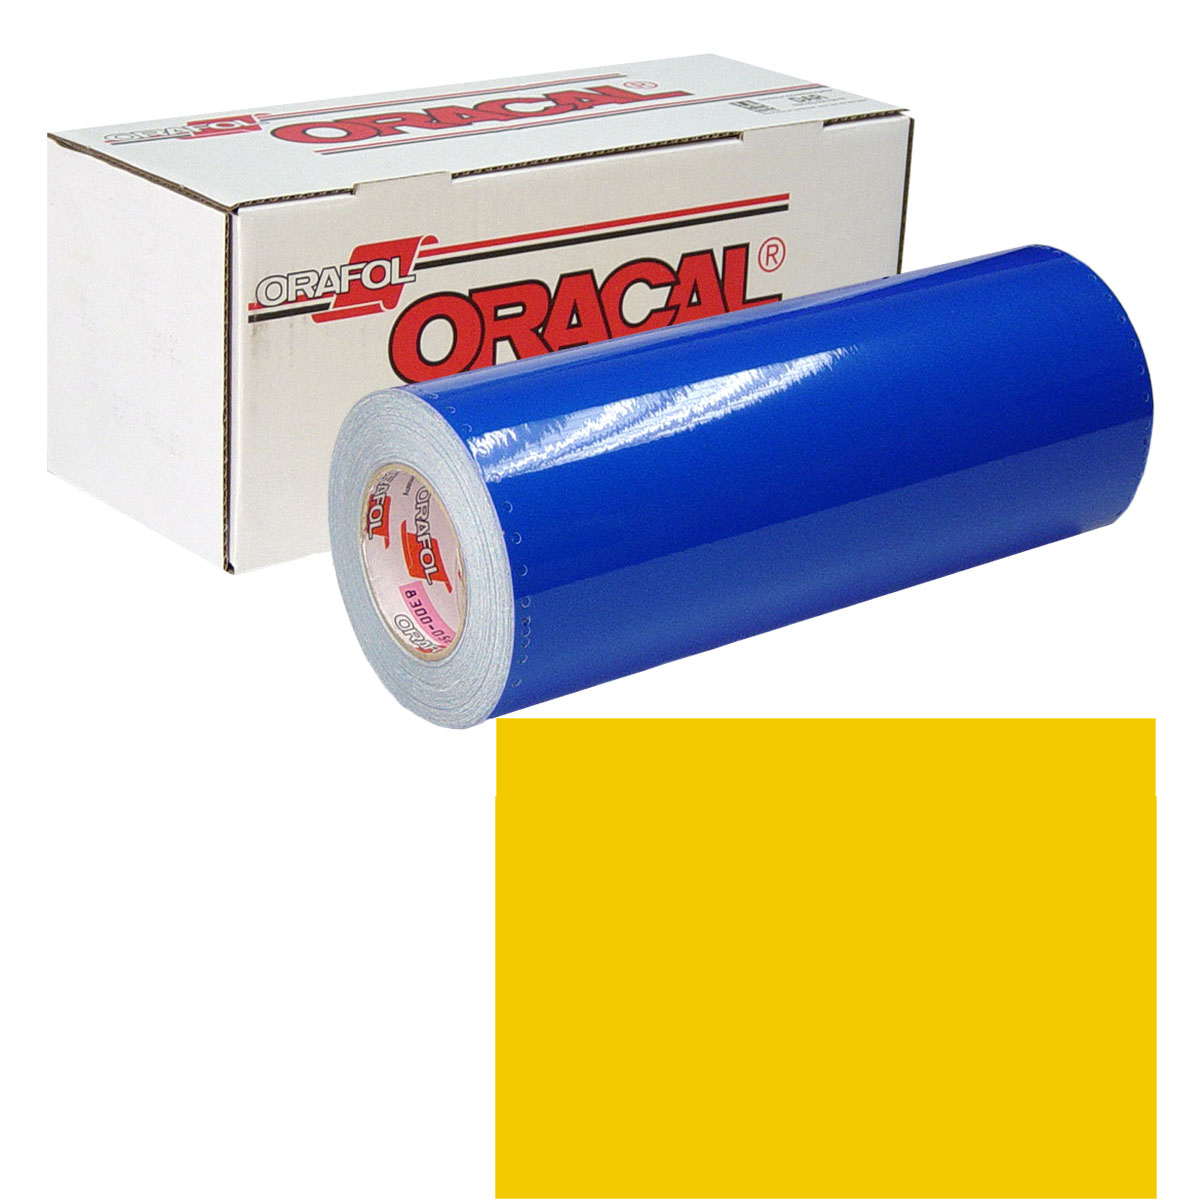 ORACAL 631 Unp 30In X 50Yd 022 Light Yellow